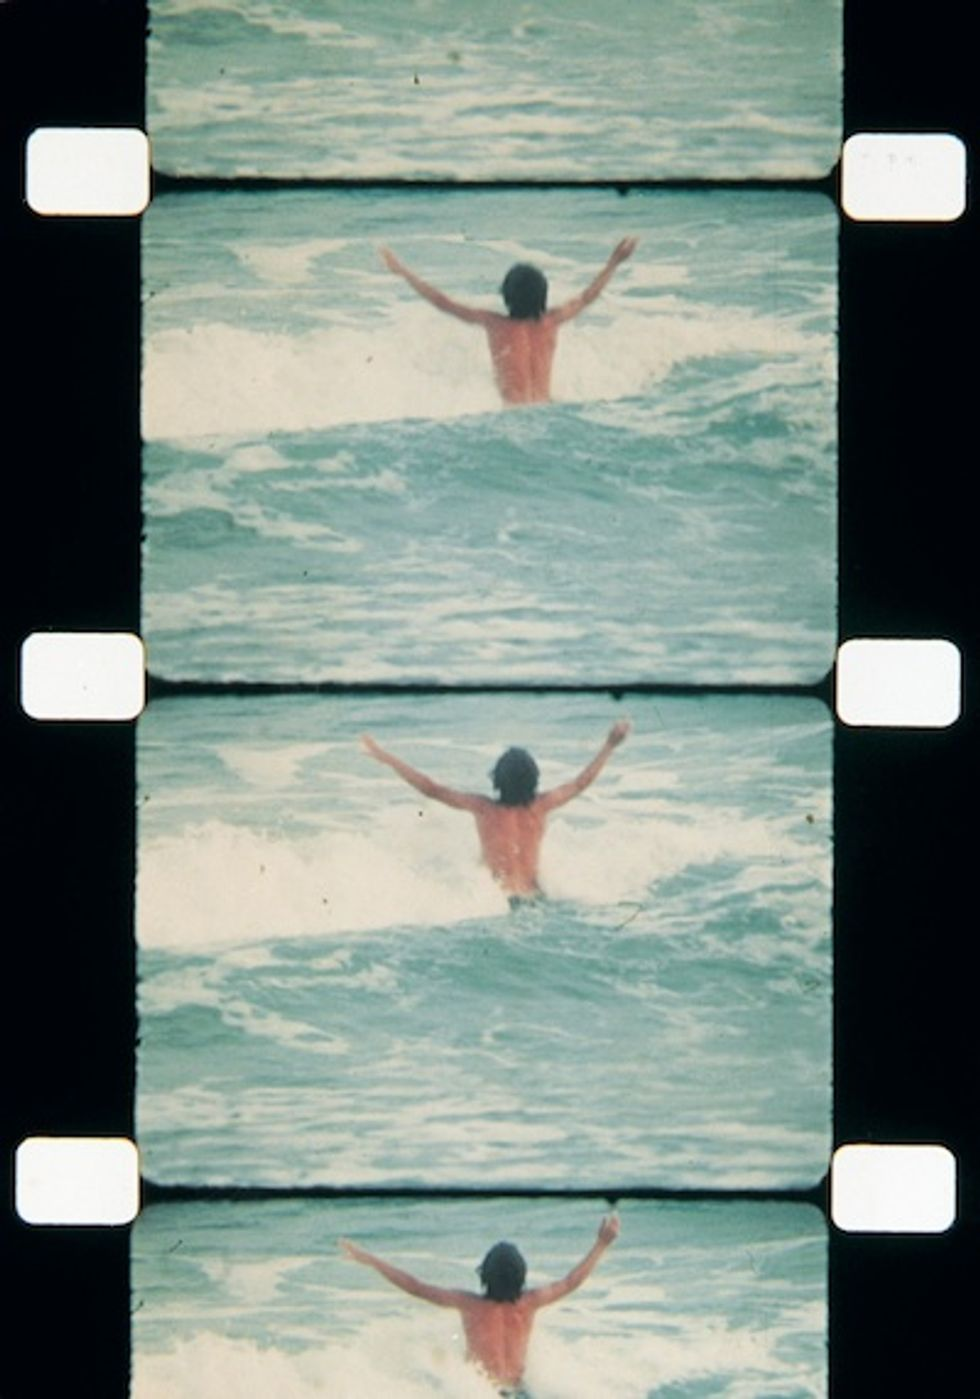 """JFK Jr. on the Beach: A Preview of Jonas Mekas's """"This Side of Paradise"""" Exhibit at agnes b's Galerie Boutique"""